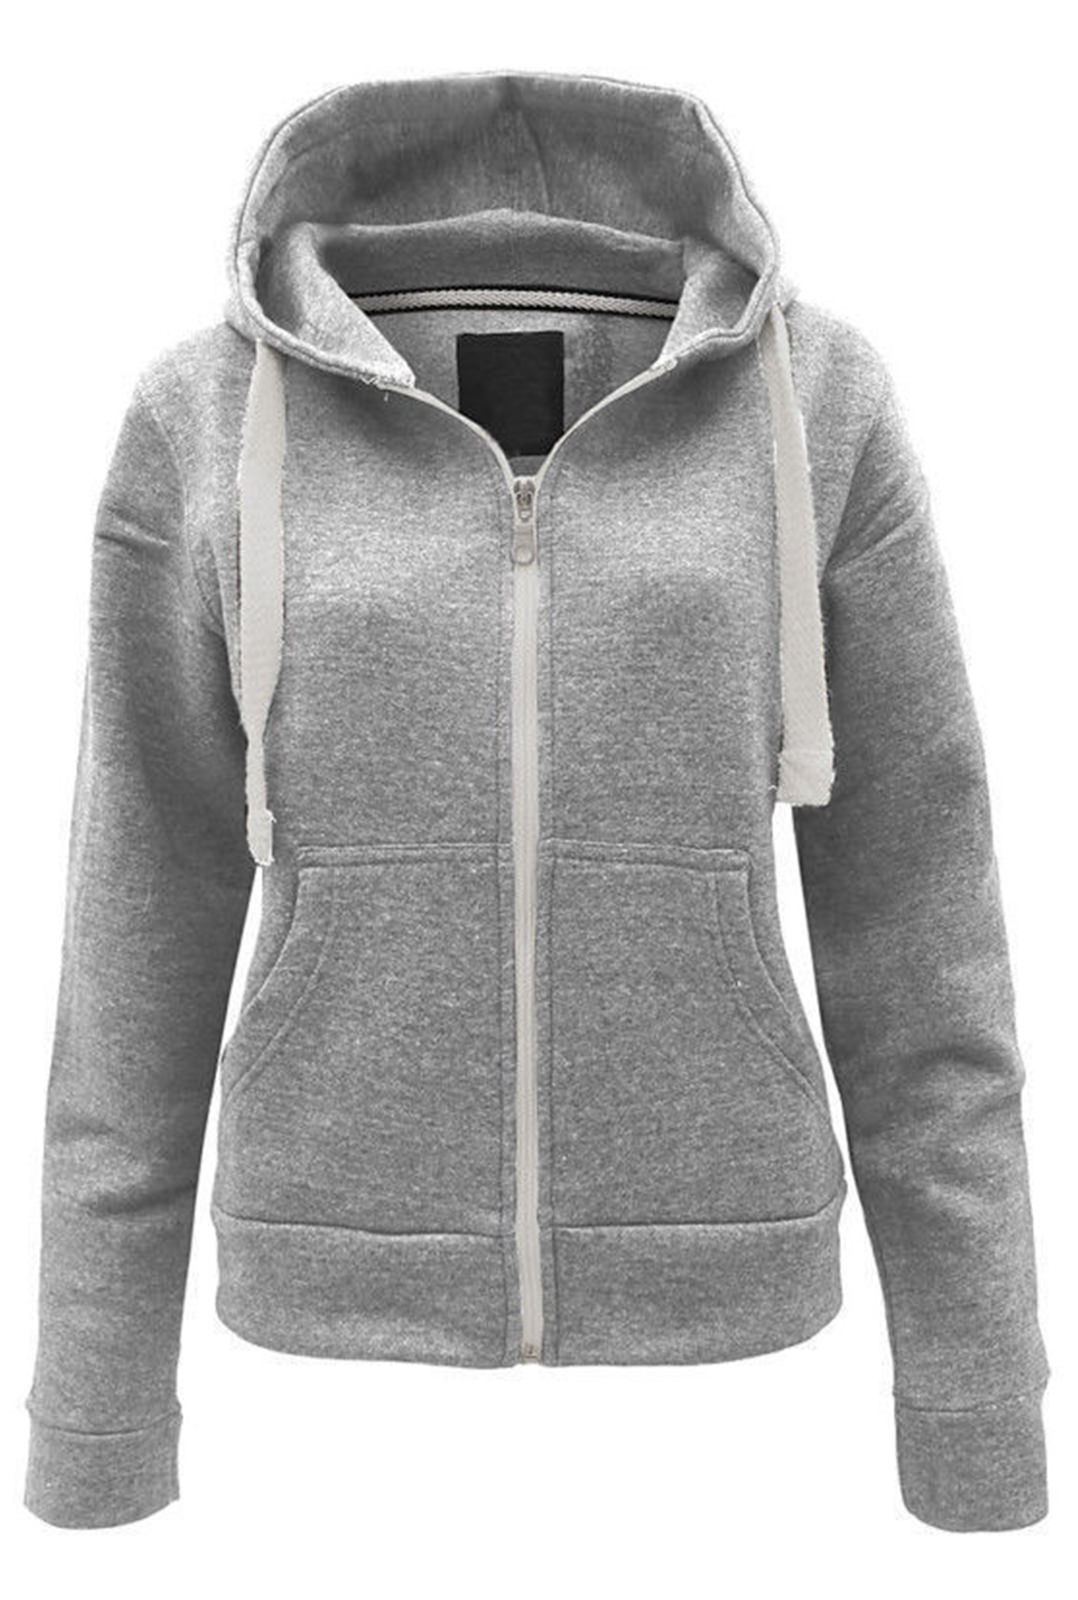 Shop adidas Women Hoodies Sweatshirts on fascinatingnewsvv.ml Browse all products, from shoes to clothing and accessories in this collection. Find all available syles and colors of Hoodies Sweatshirts in the official adidas online store.